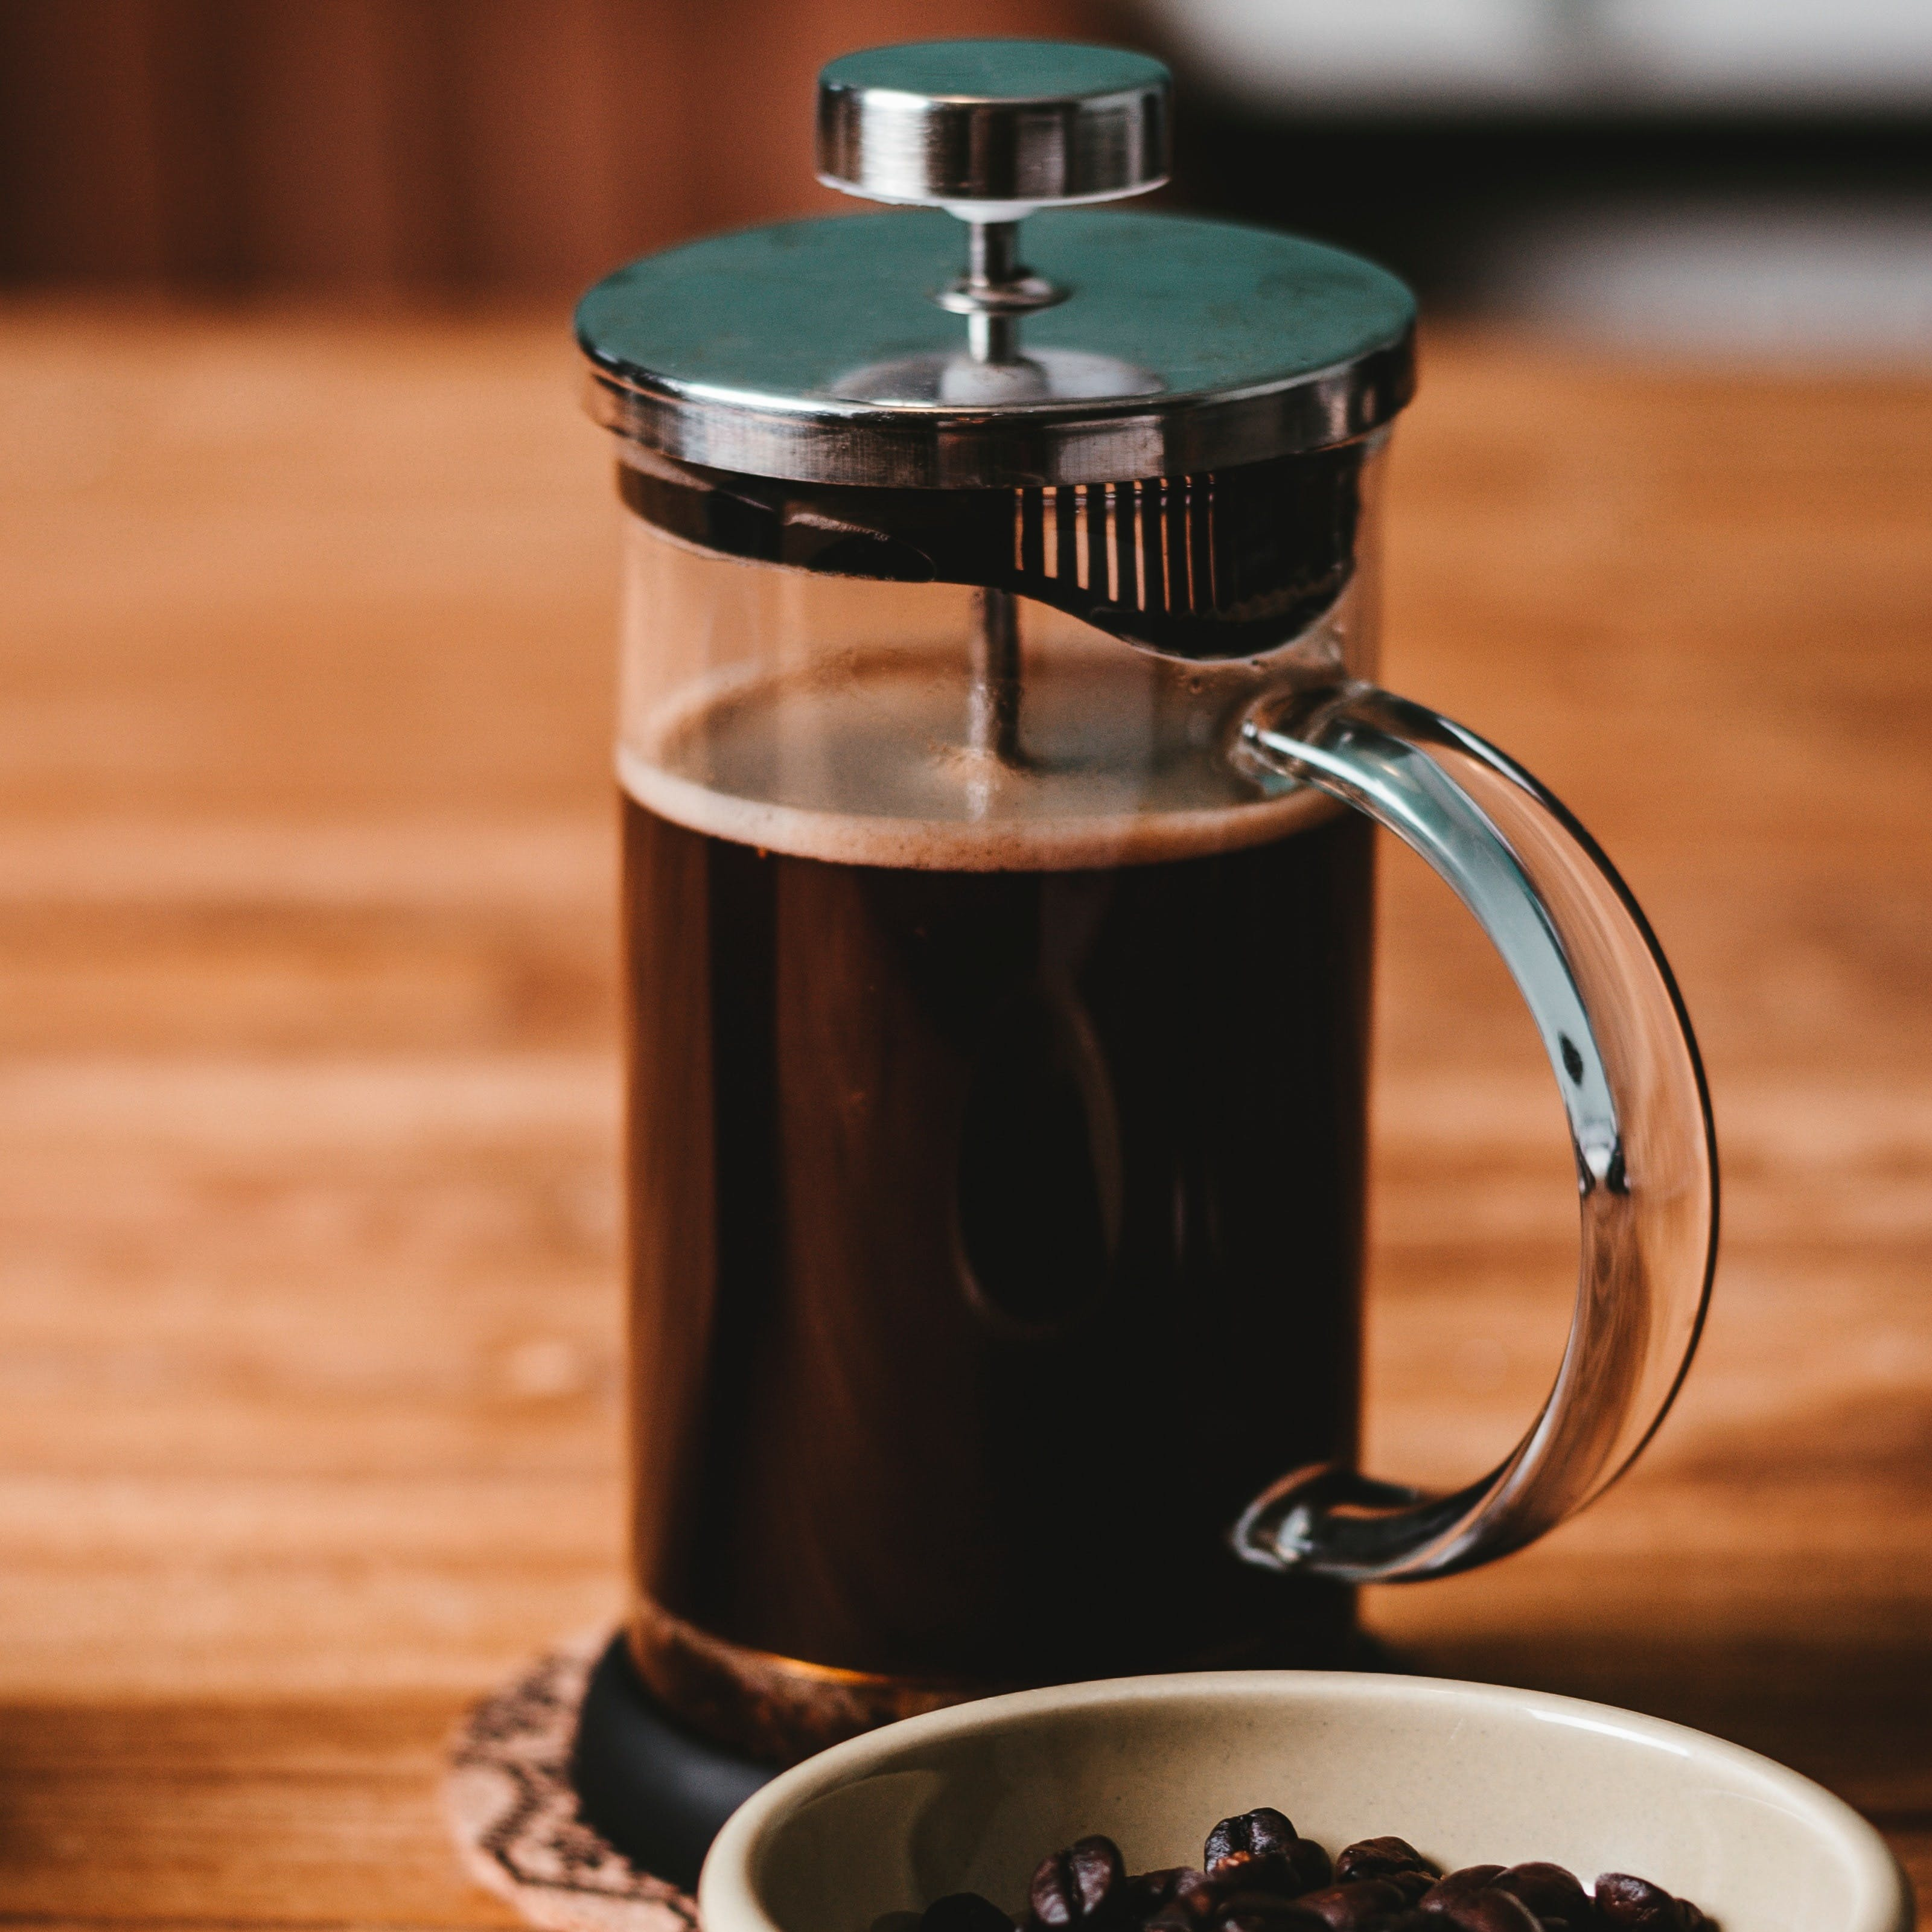 French press,Small appliance,Home appliance,Liqueur coffee,Kitchen appliance,Coffee grinder,Coffee percolator,Vacuum coffee maker